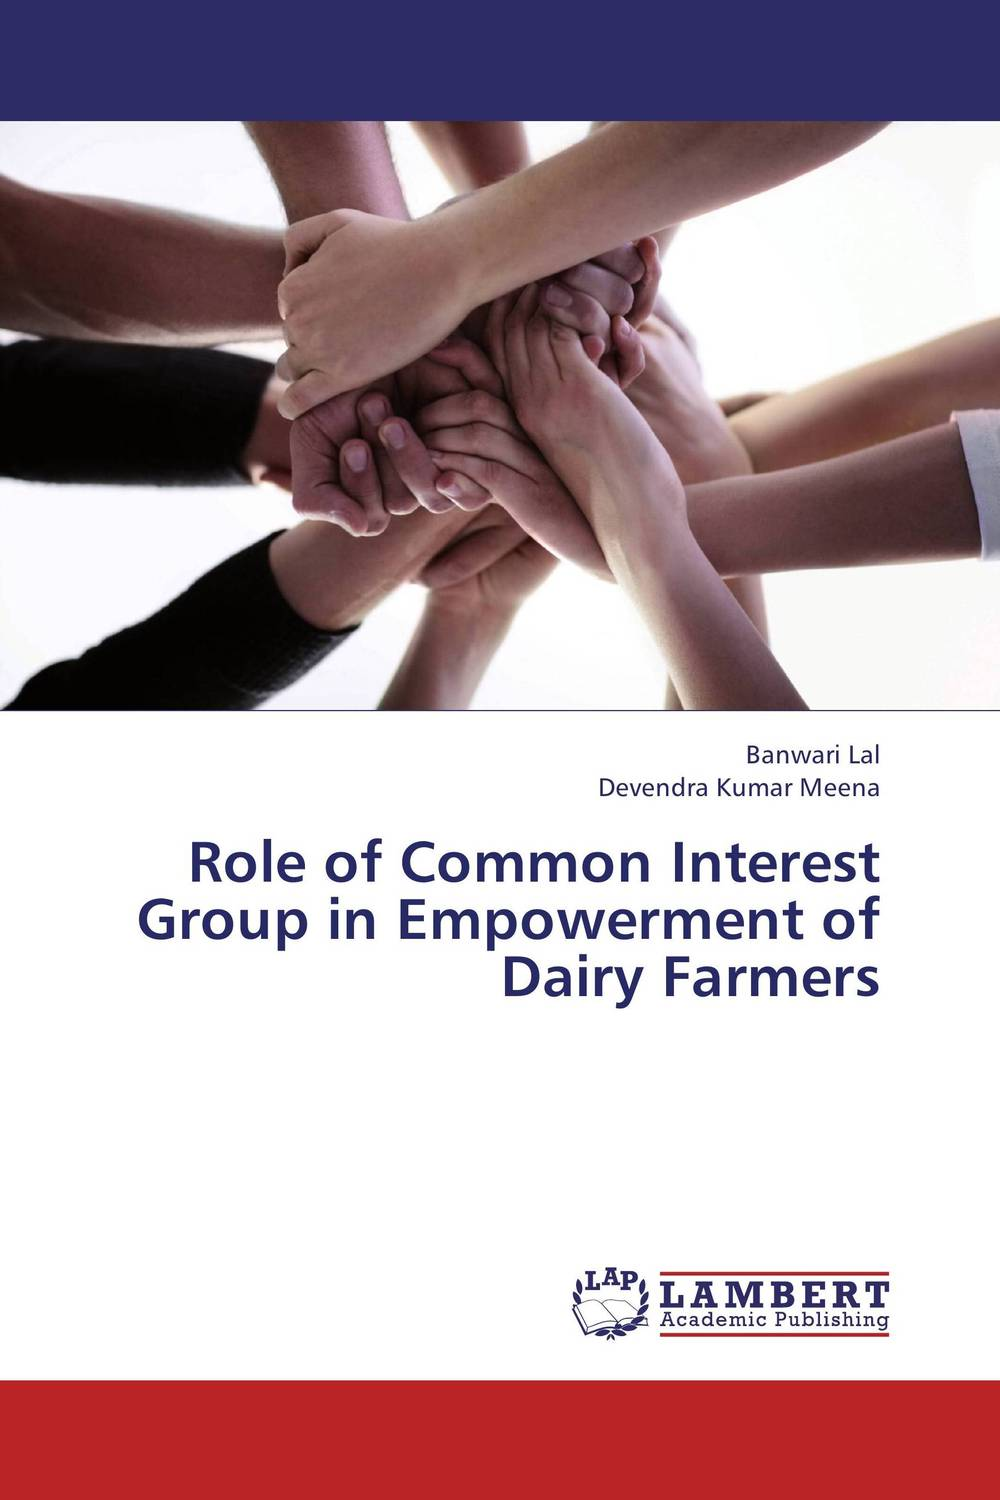 Role of Common Interest Group in Empowerment of Dairy Farmers the common link